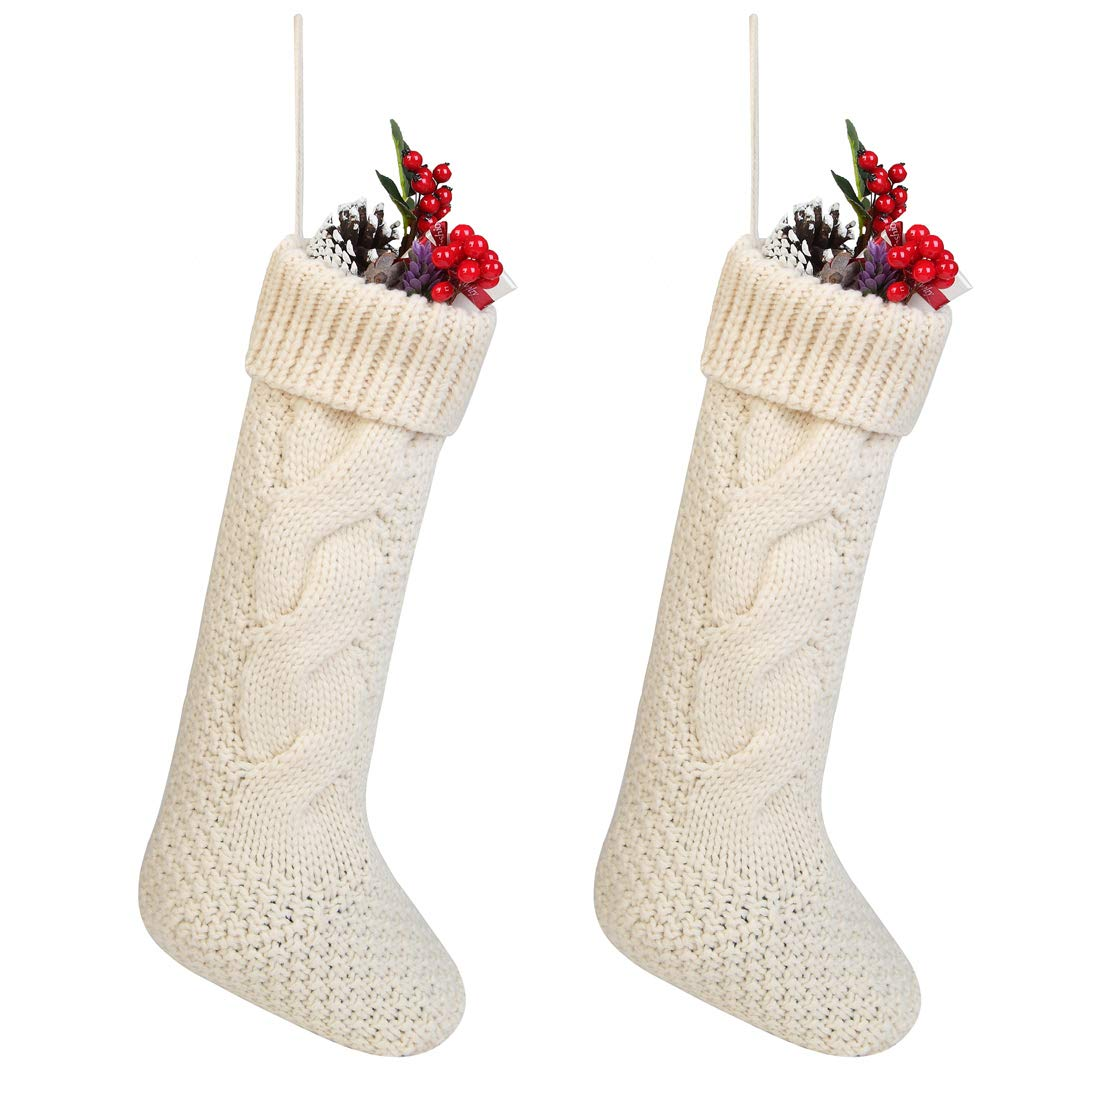 Toes Home 17 inch Knitted Christmas Stockings, Pack 2 Xmas Gift Bags Cream